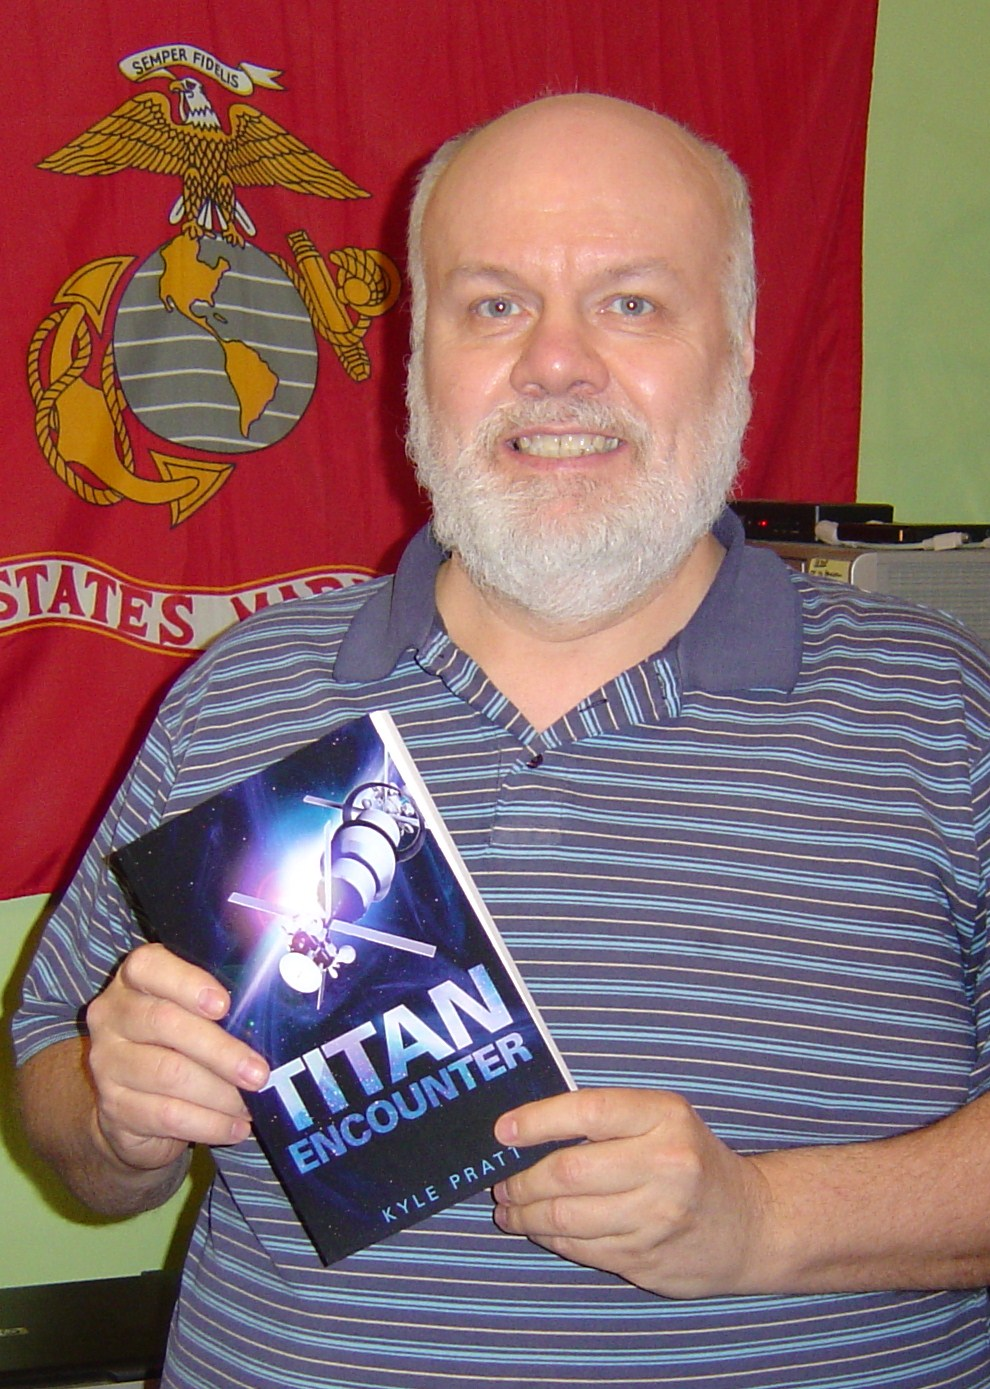 David from St. Cloud, Minnesota with a copy of Titan Encounter.